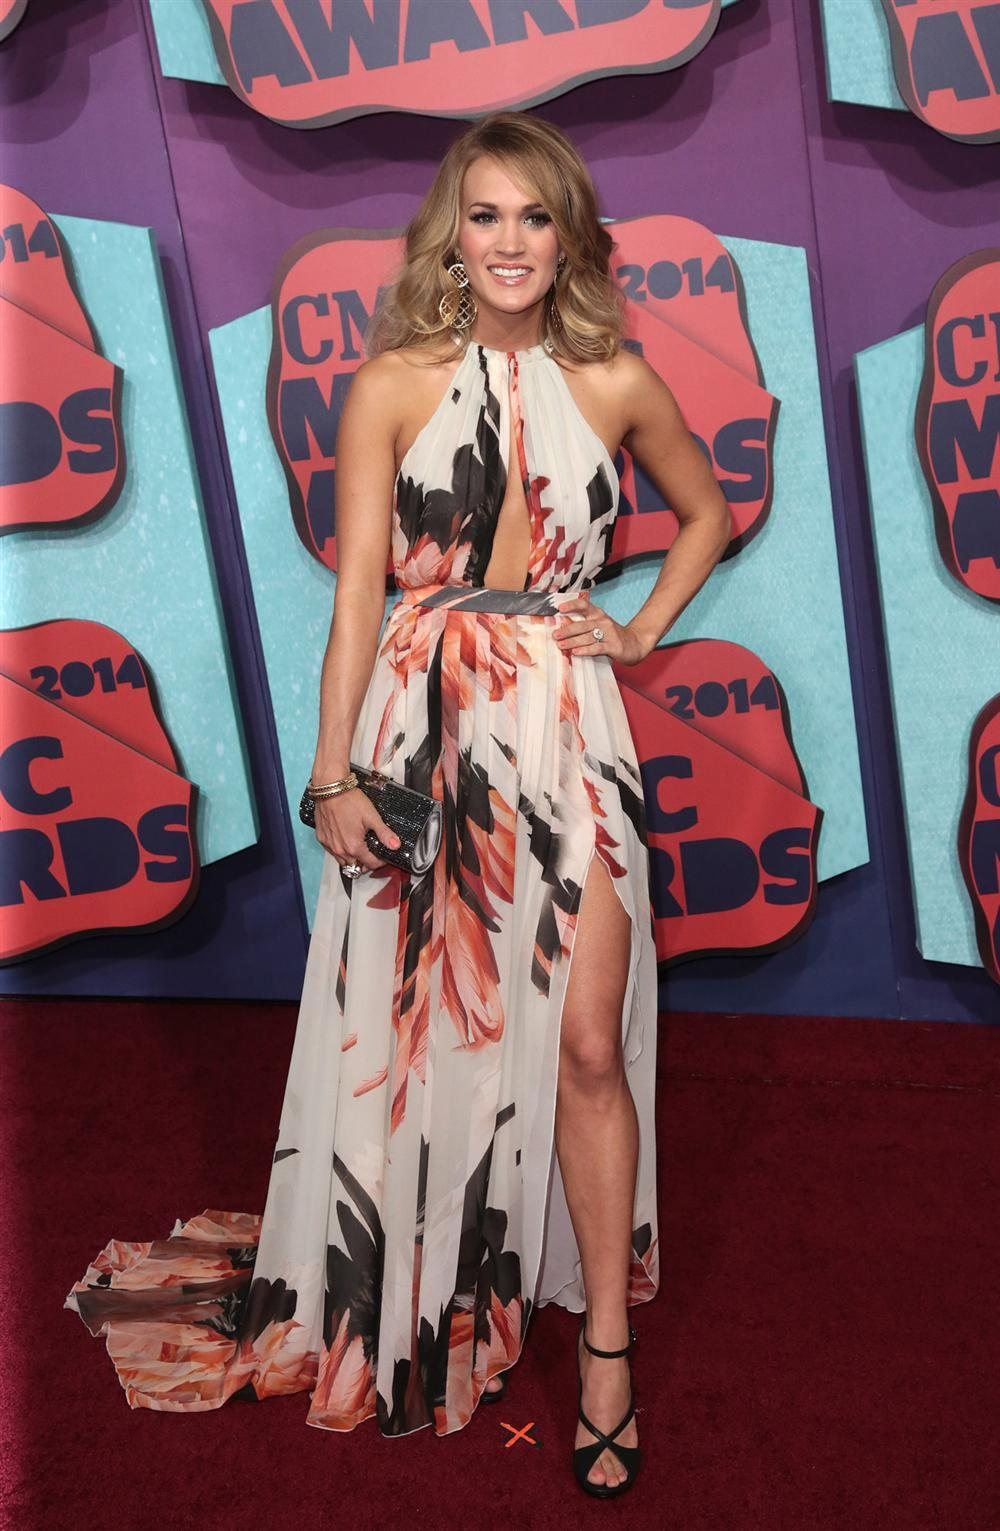 Carrie Underwood. CMT Music Awards